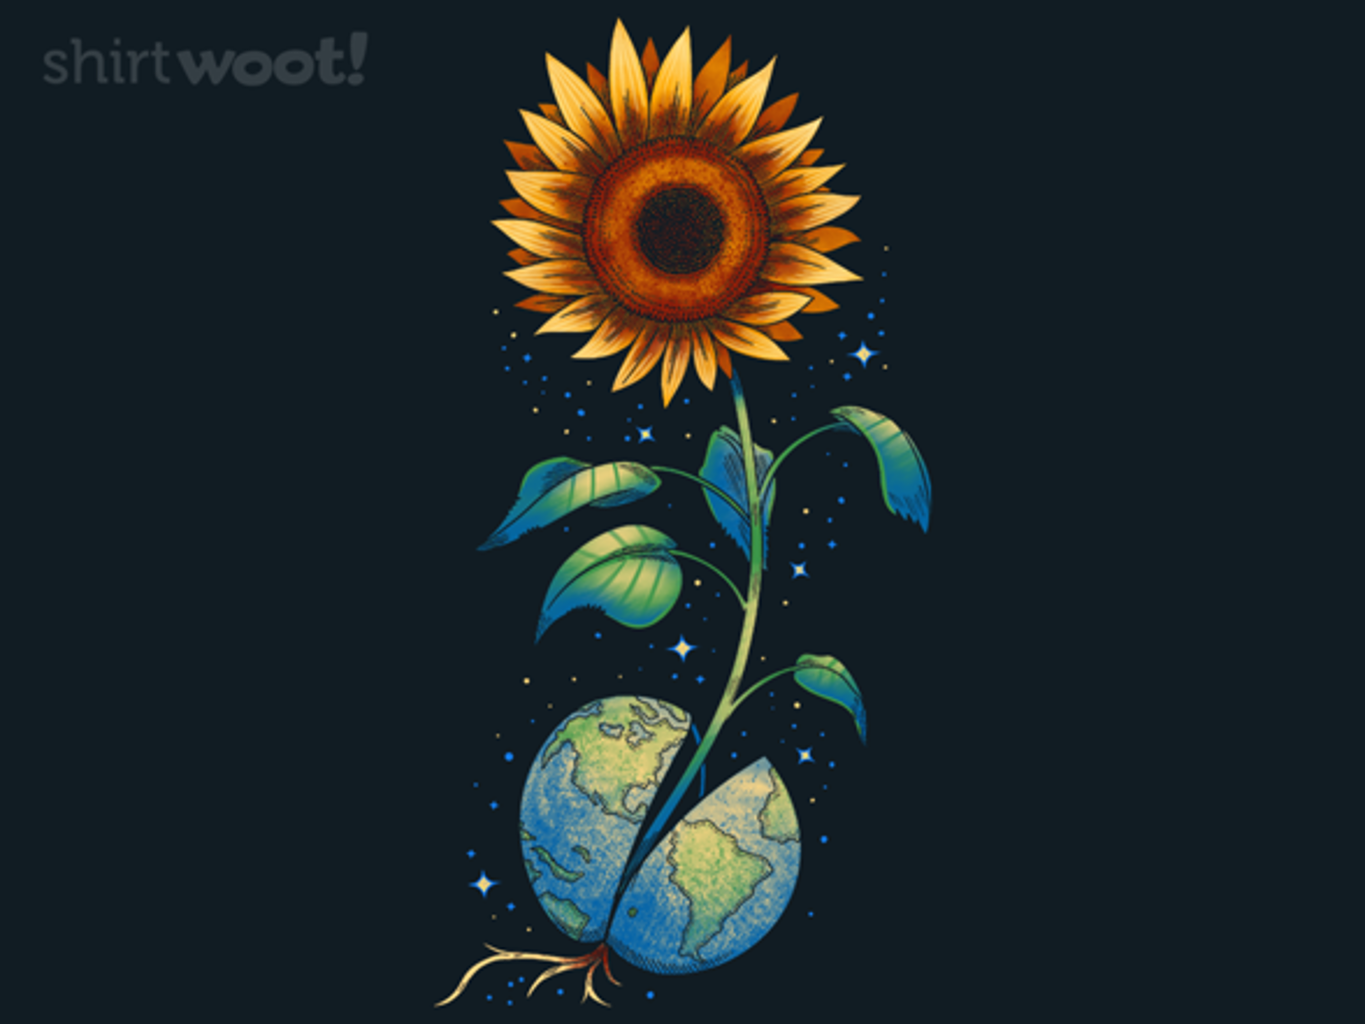 Woot!: Sunflower